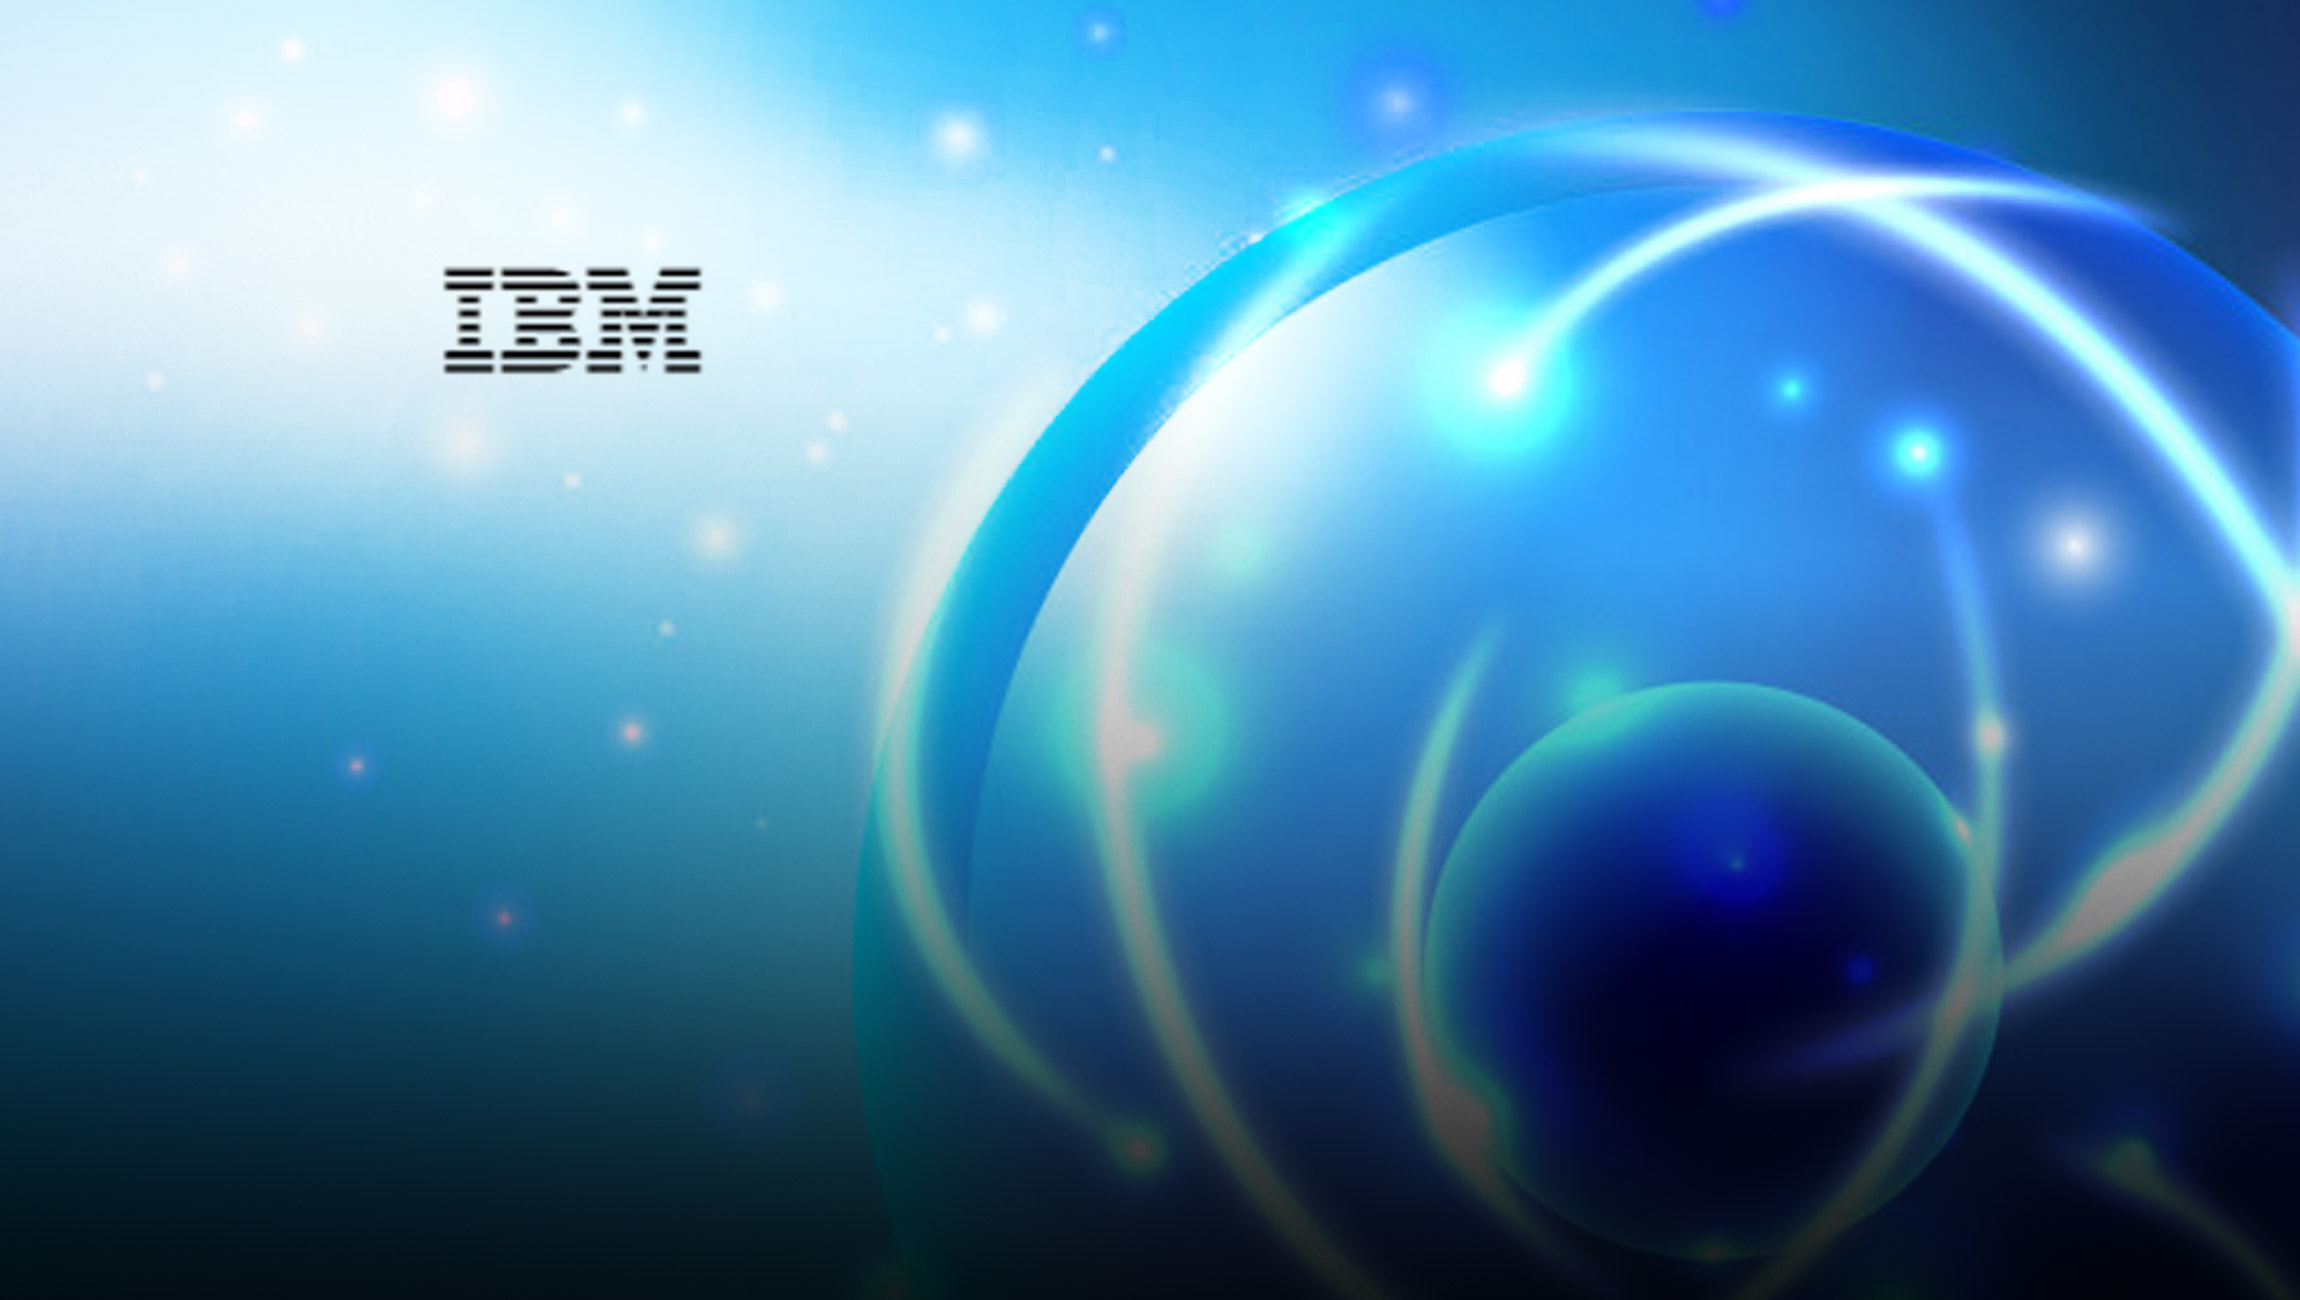 IBM Named a Leader in Customer Identity and Access Management (CIAM) By Independent Research Firm